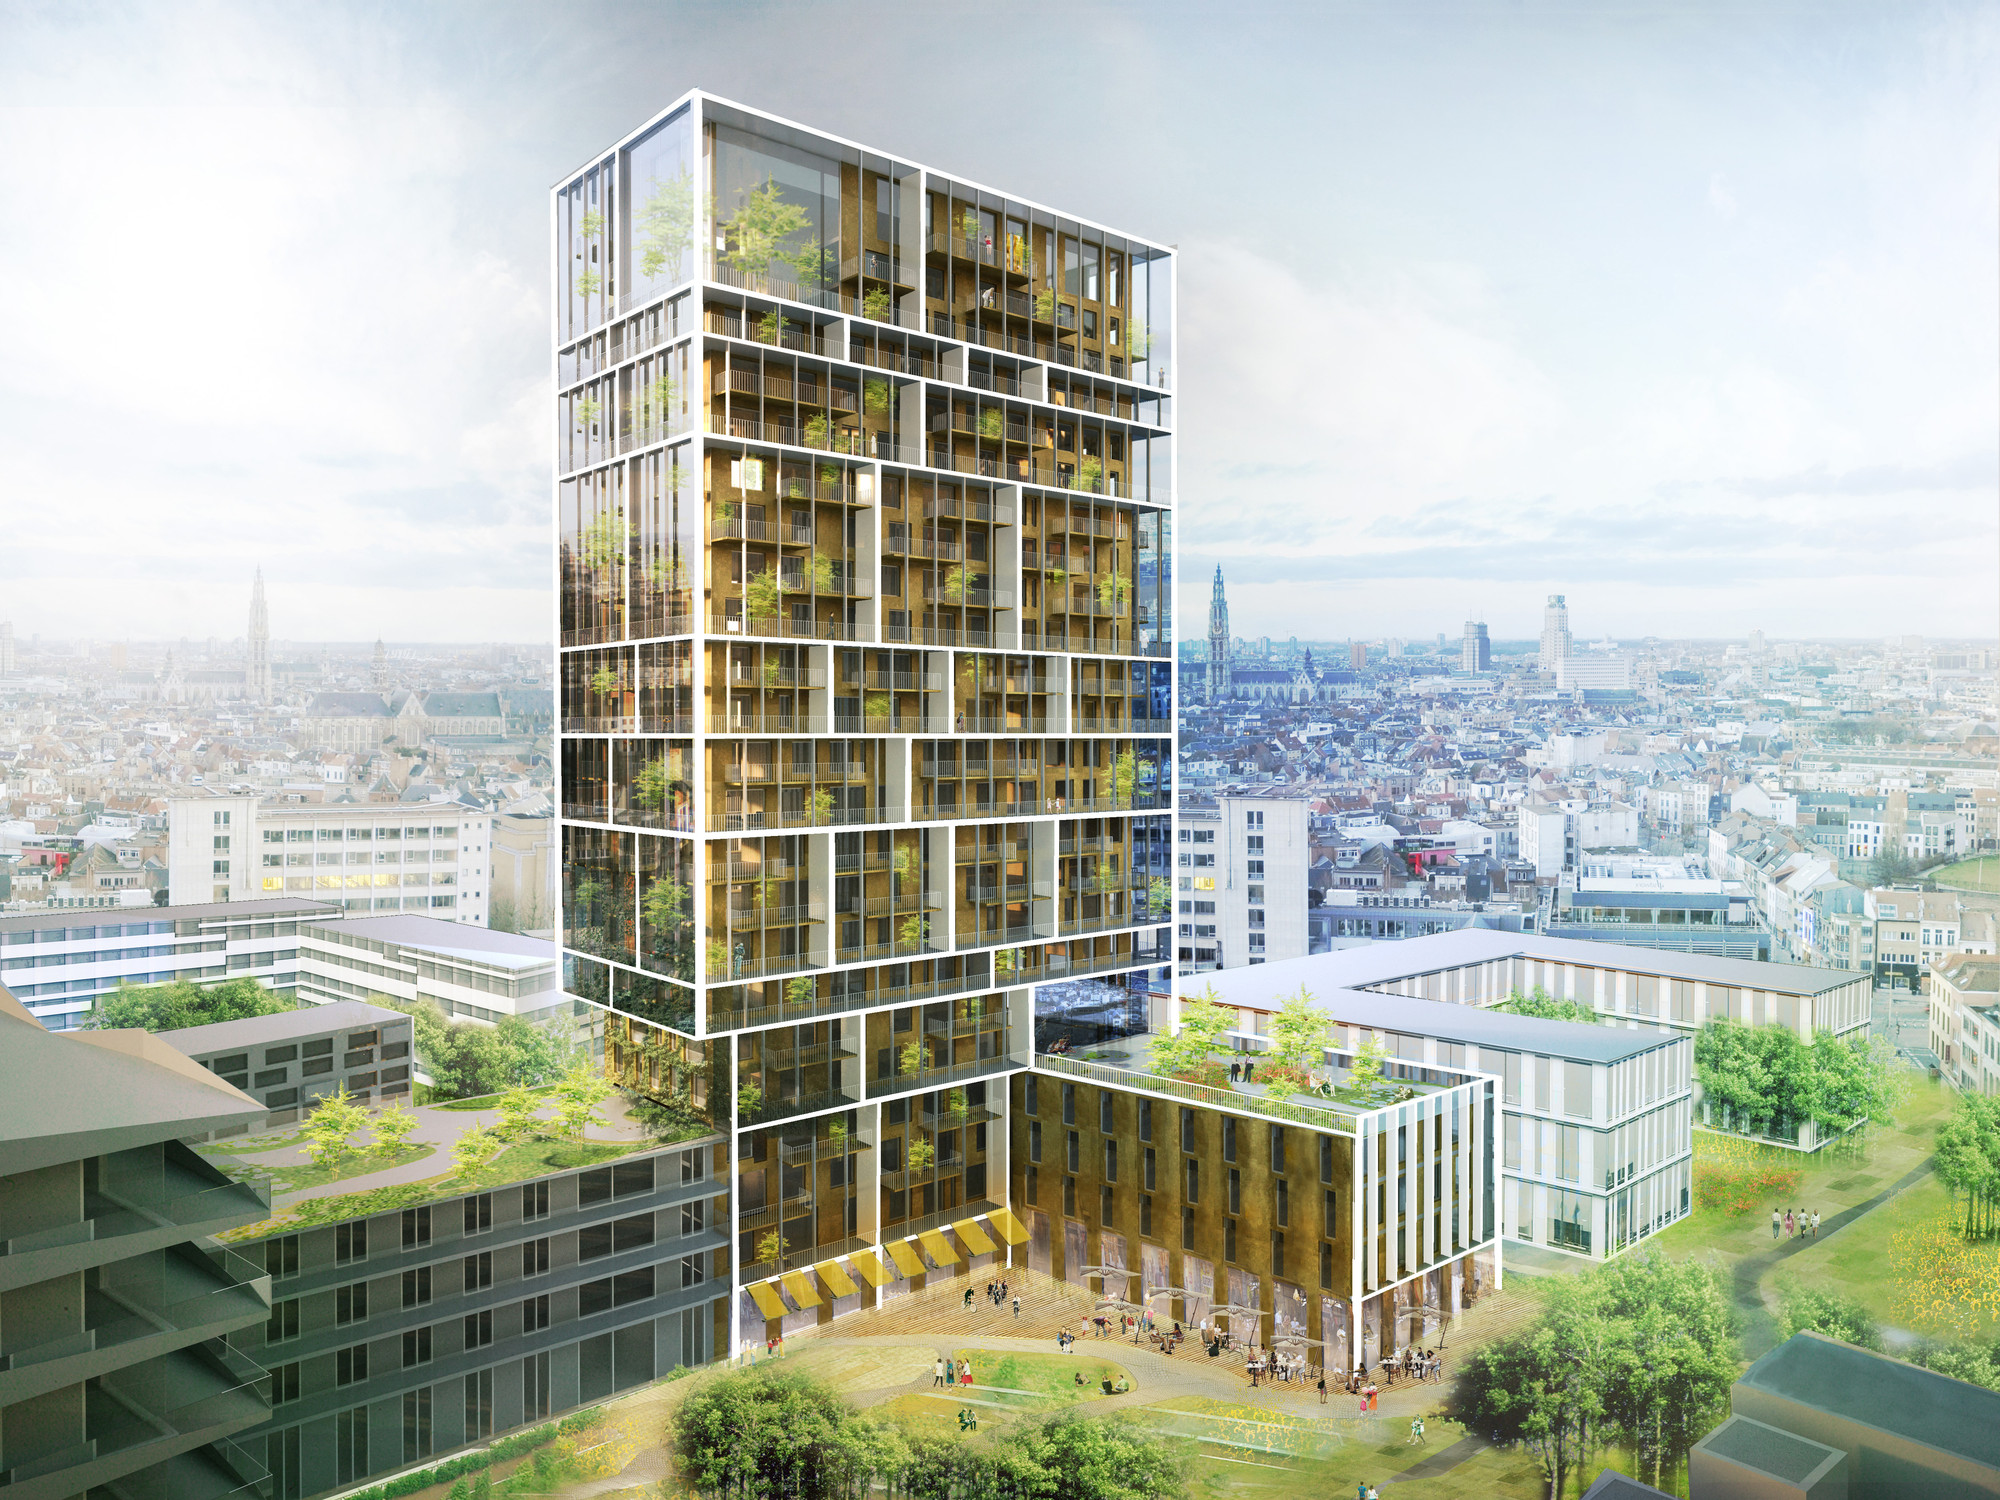 C f m ller chosen to design antwerp residential tower for Design hotel antwerpen